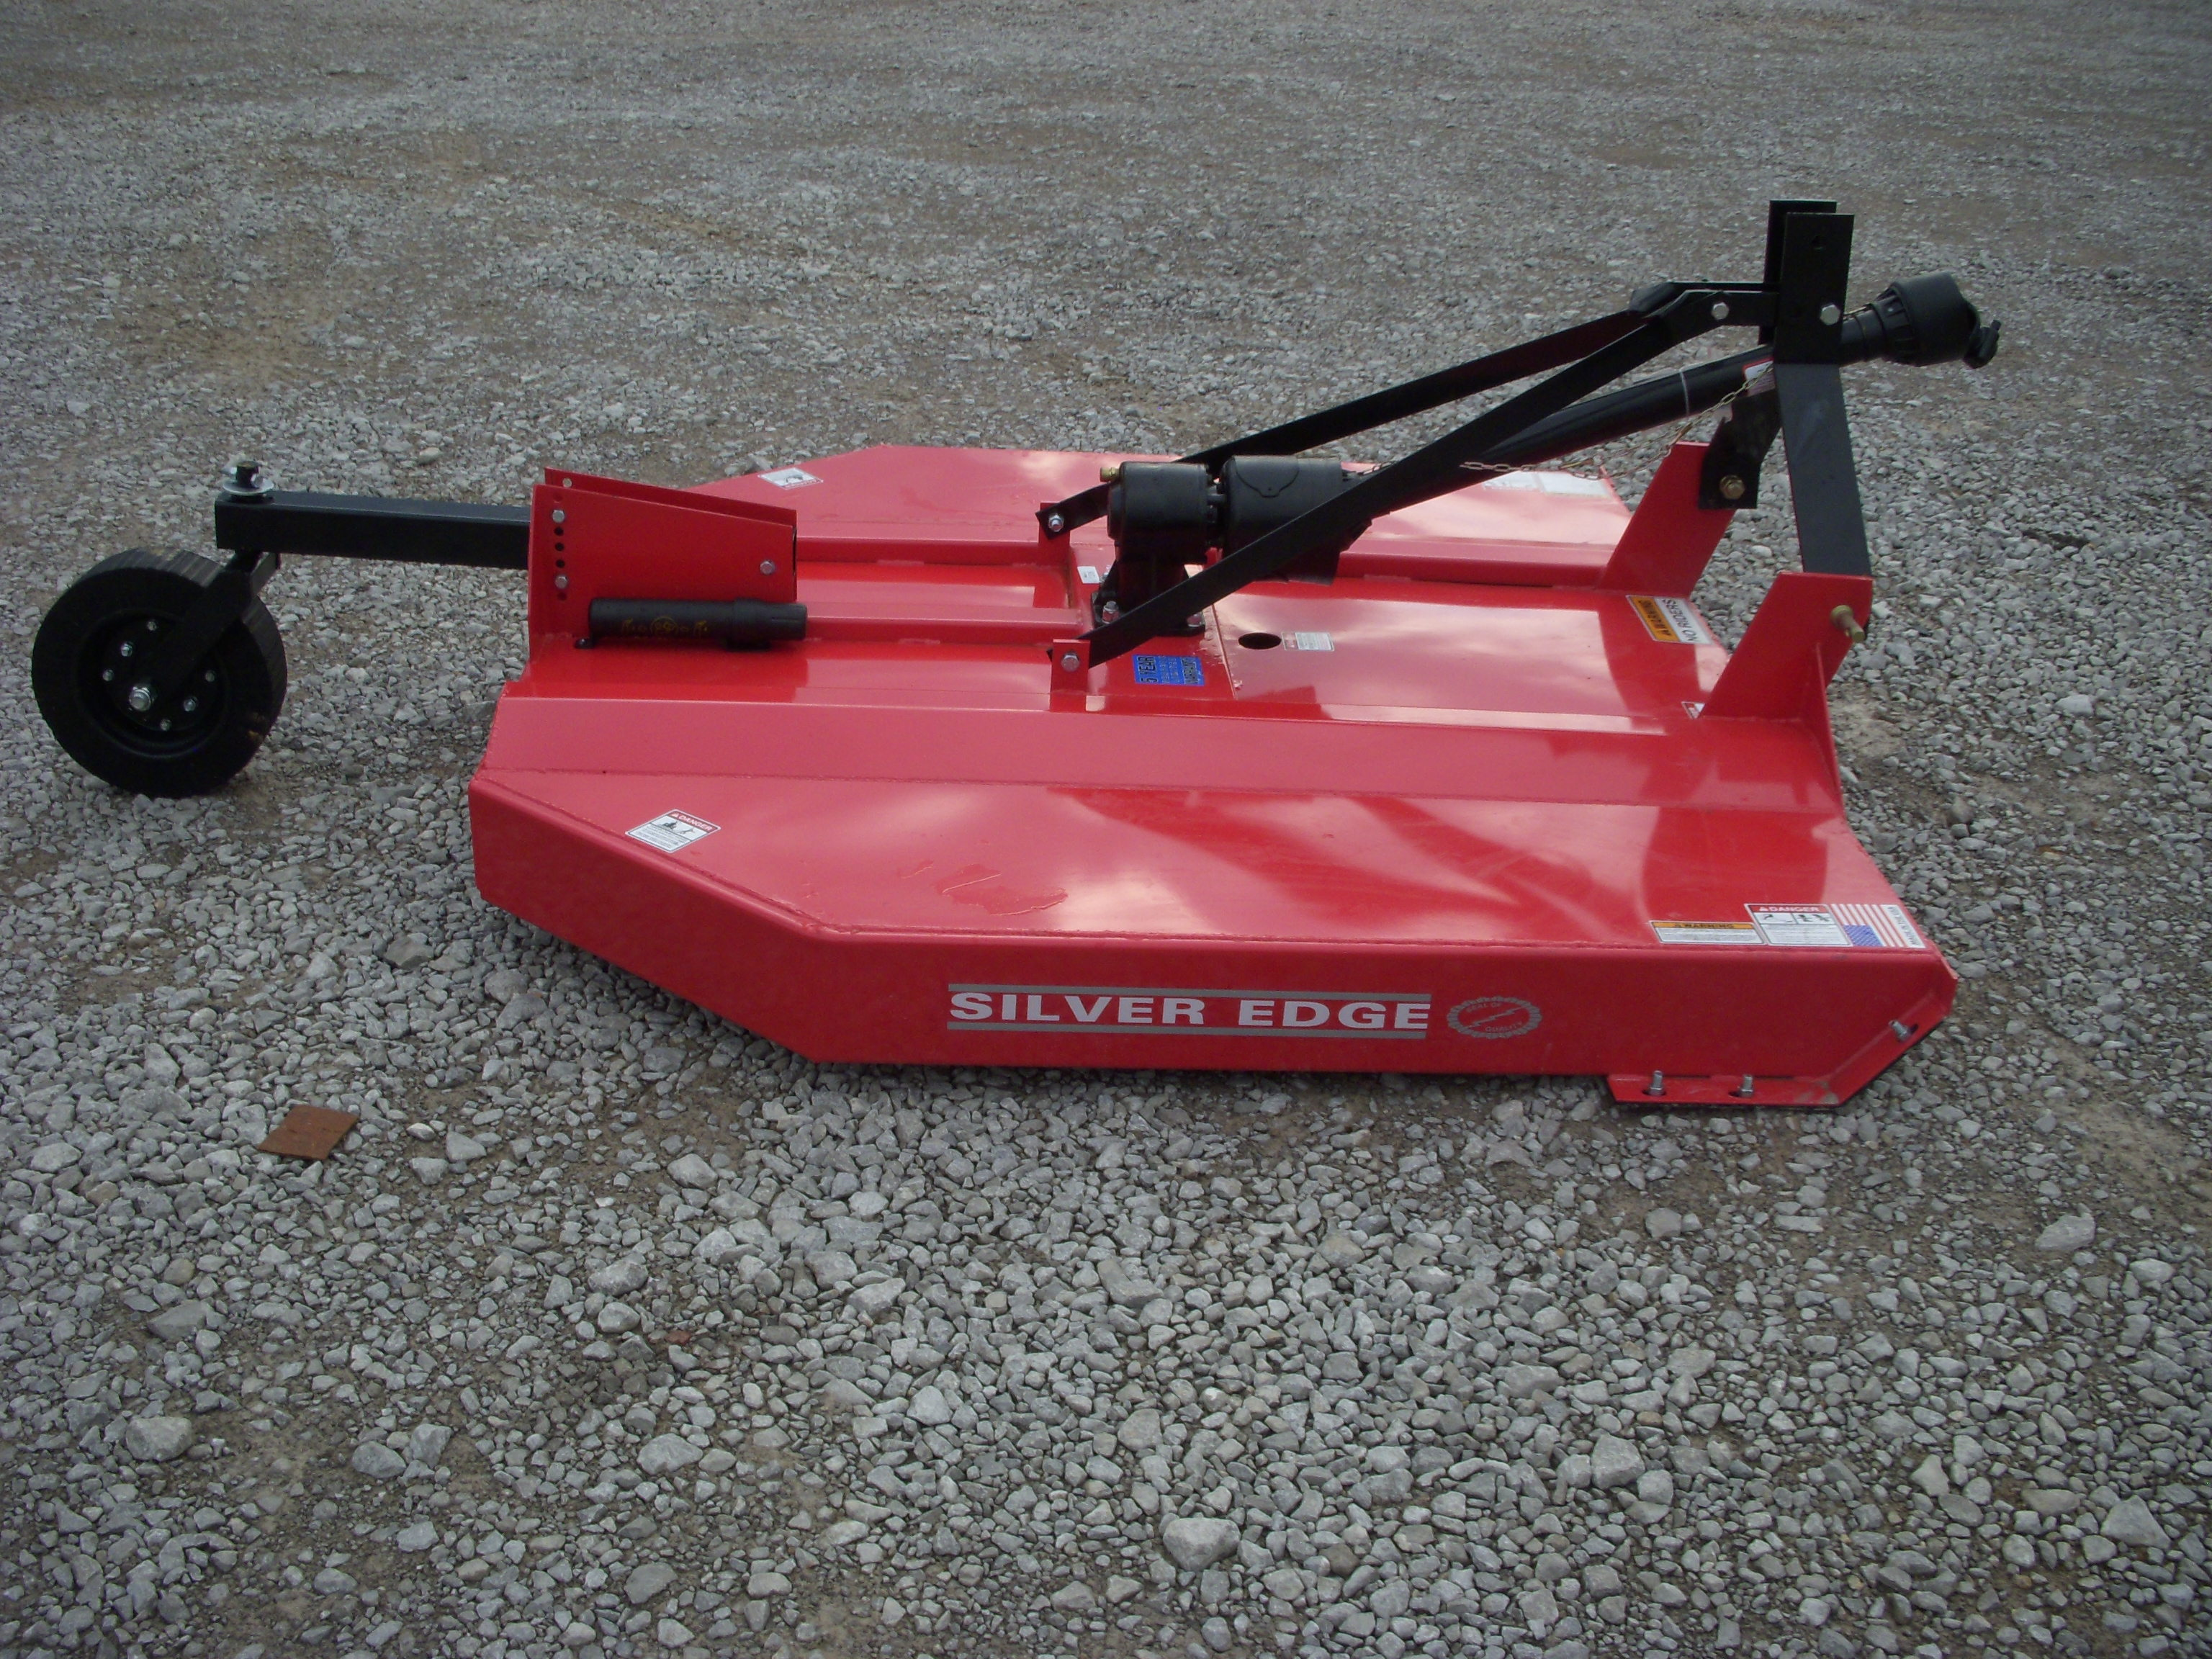 Silver Edge 72 Quot 6 Foot Rotary Cutter Bush Hog Skid Steer